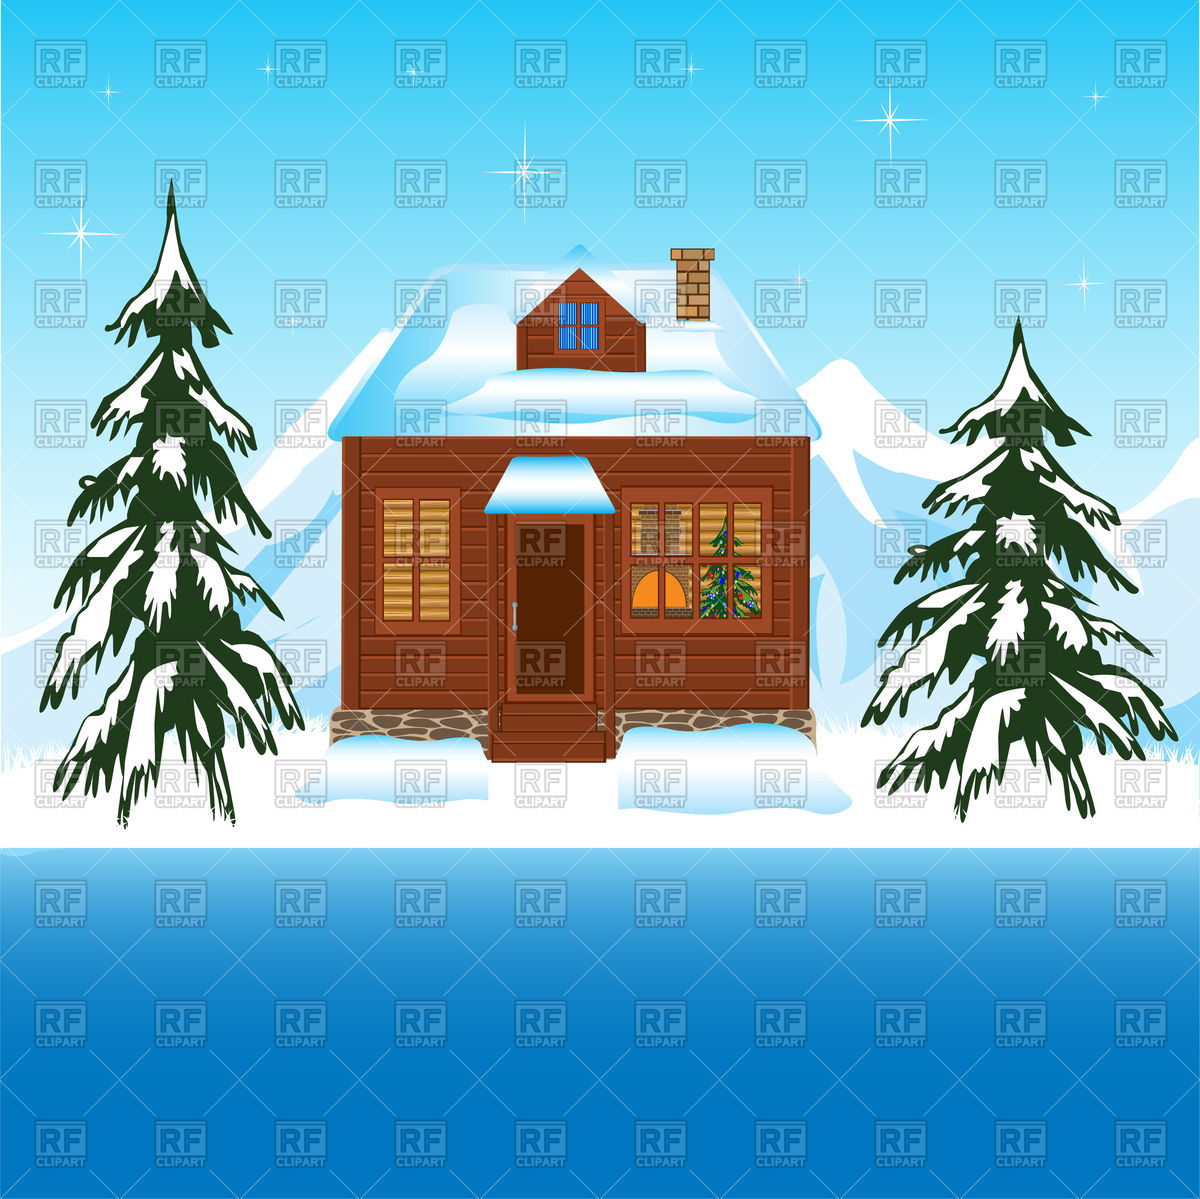 House in winter wood amongst mountains Vector Image #91410.